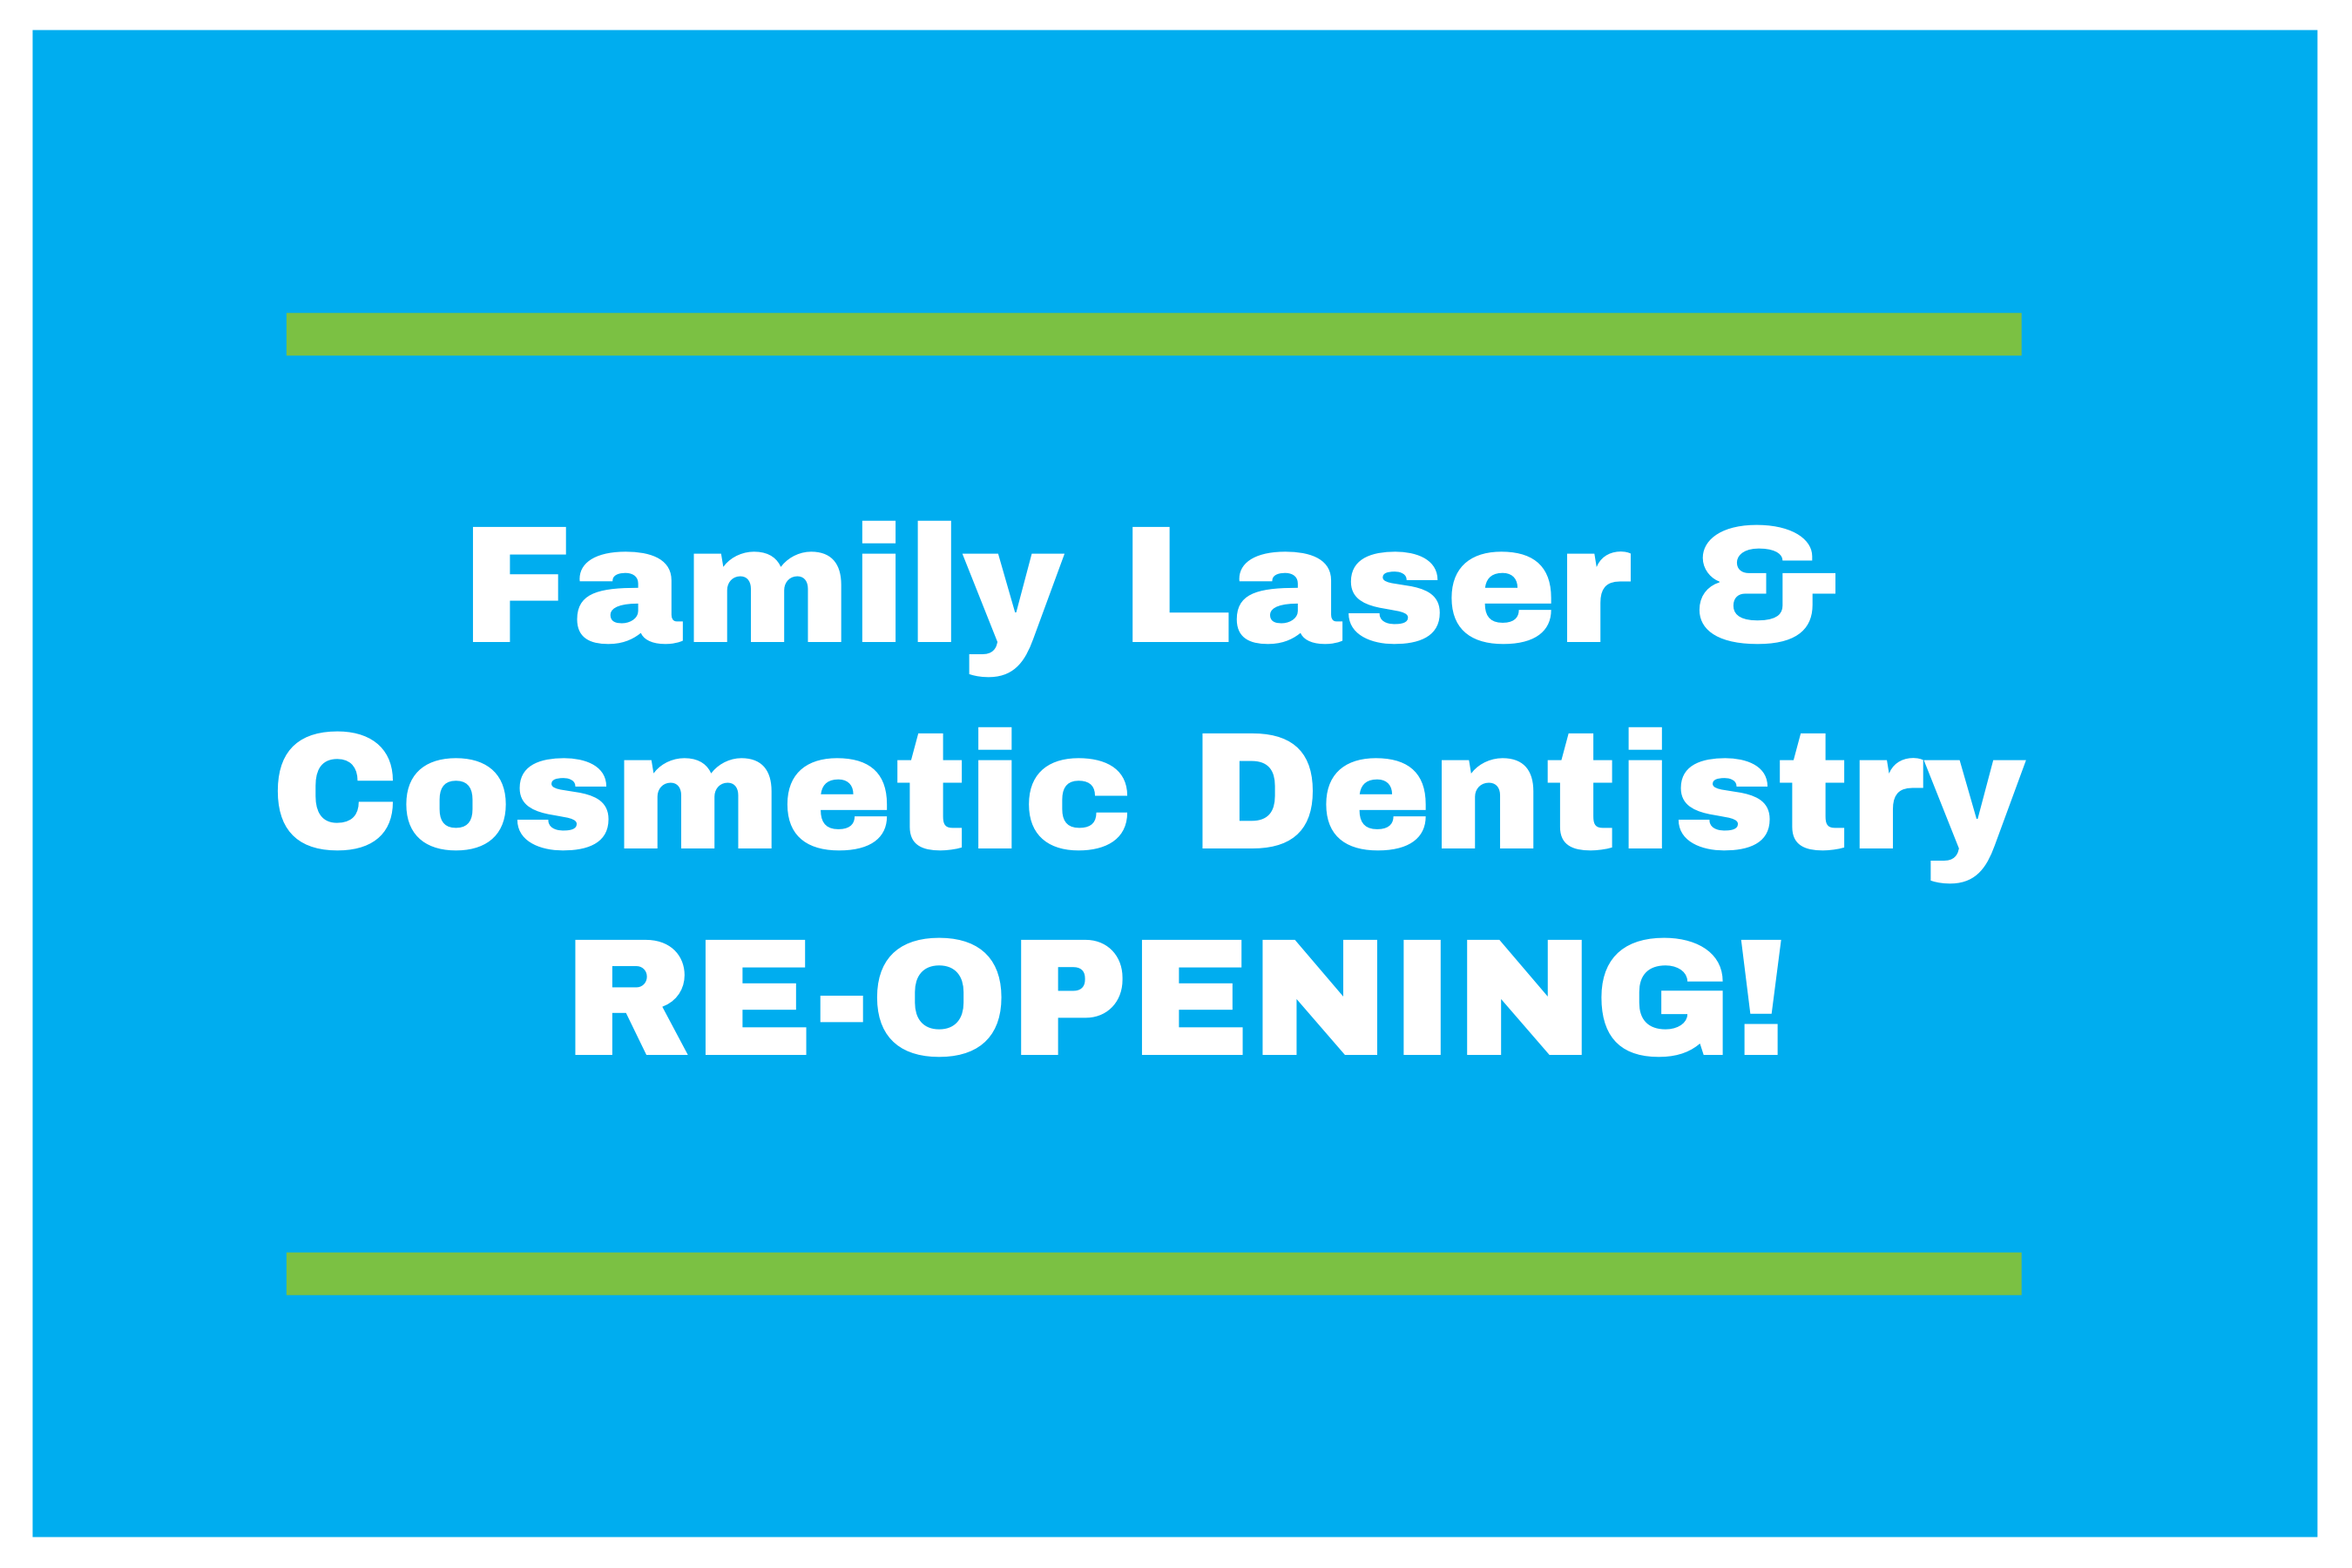 welcoming you back, appointment, rochester hills, mi, re-opening, dental clinic, family dentist, pediatric dentist